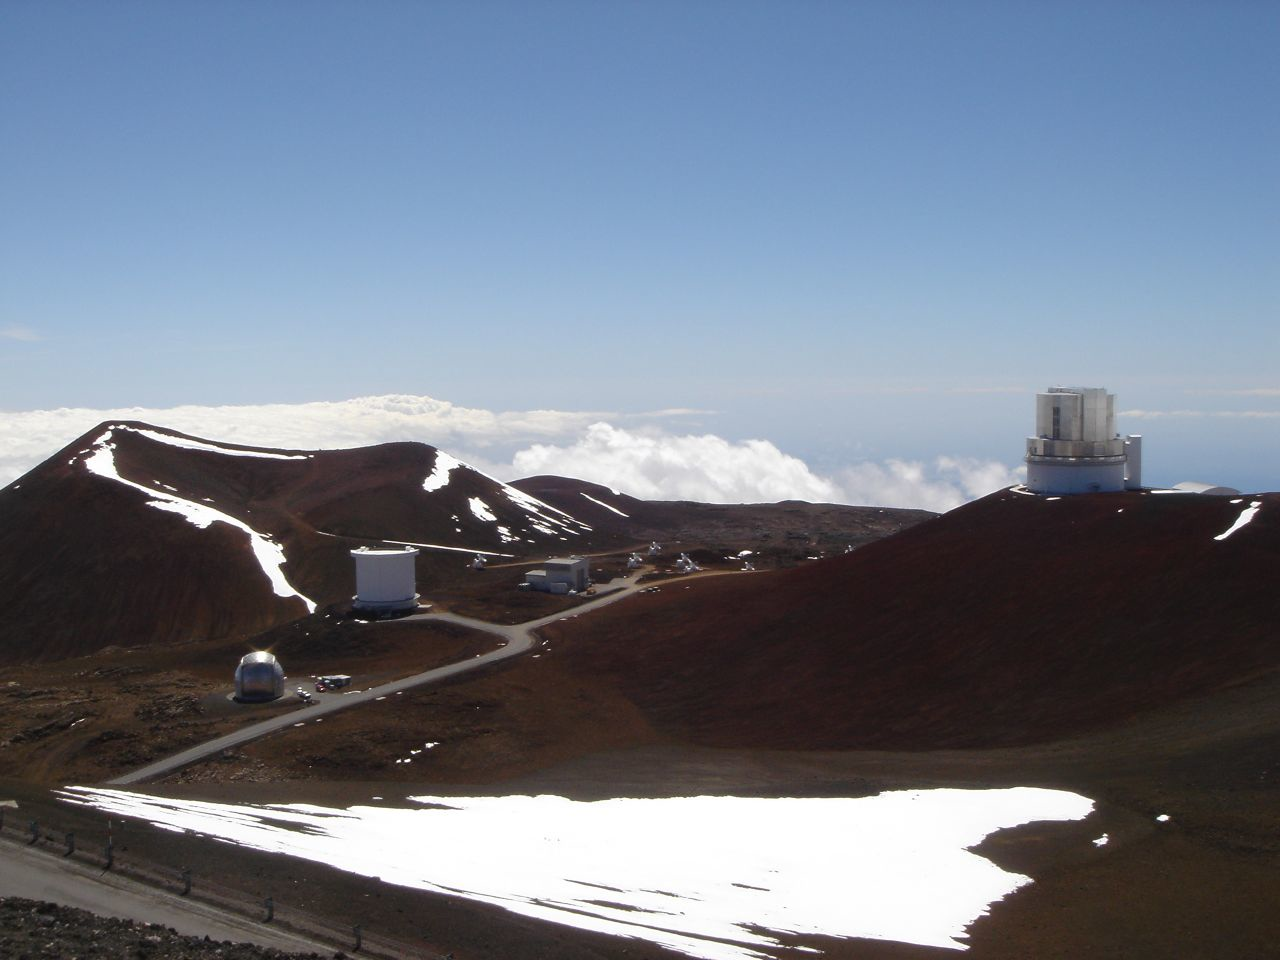 Keck telescope in Hawaii